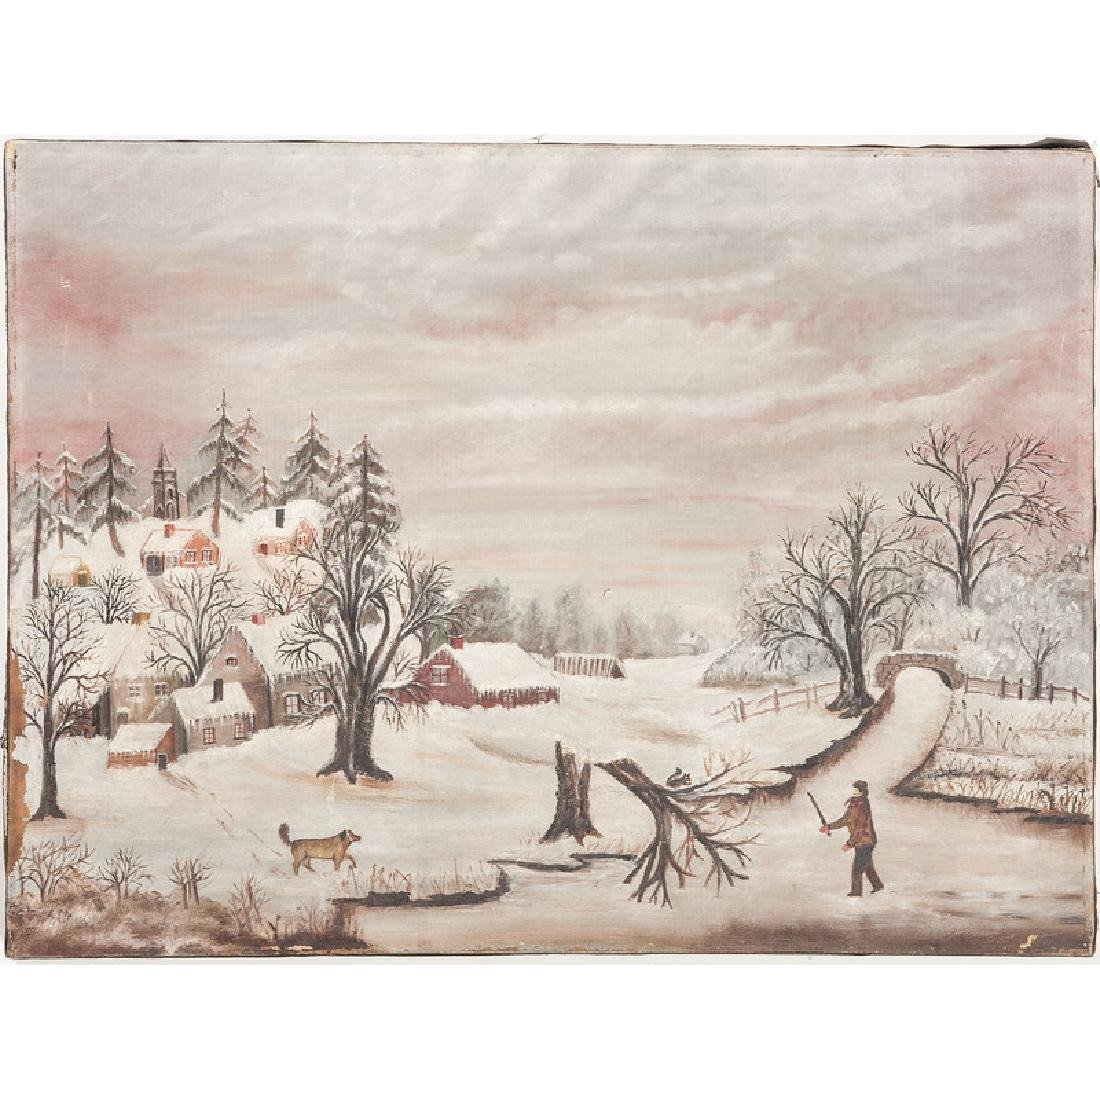 Primitive Winter Landscape Painting